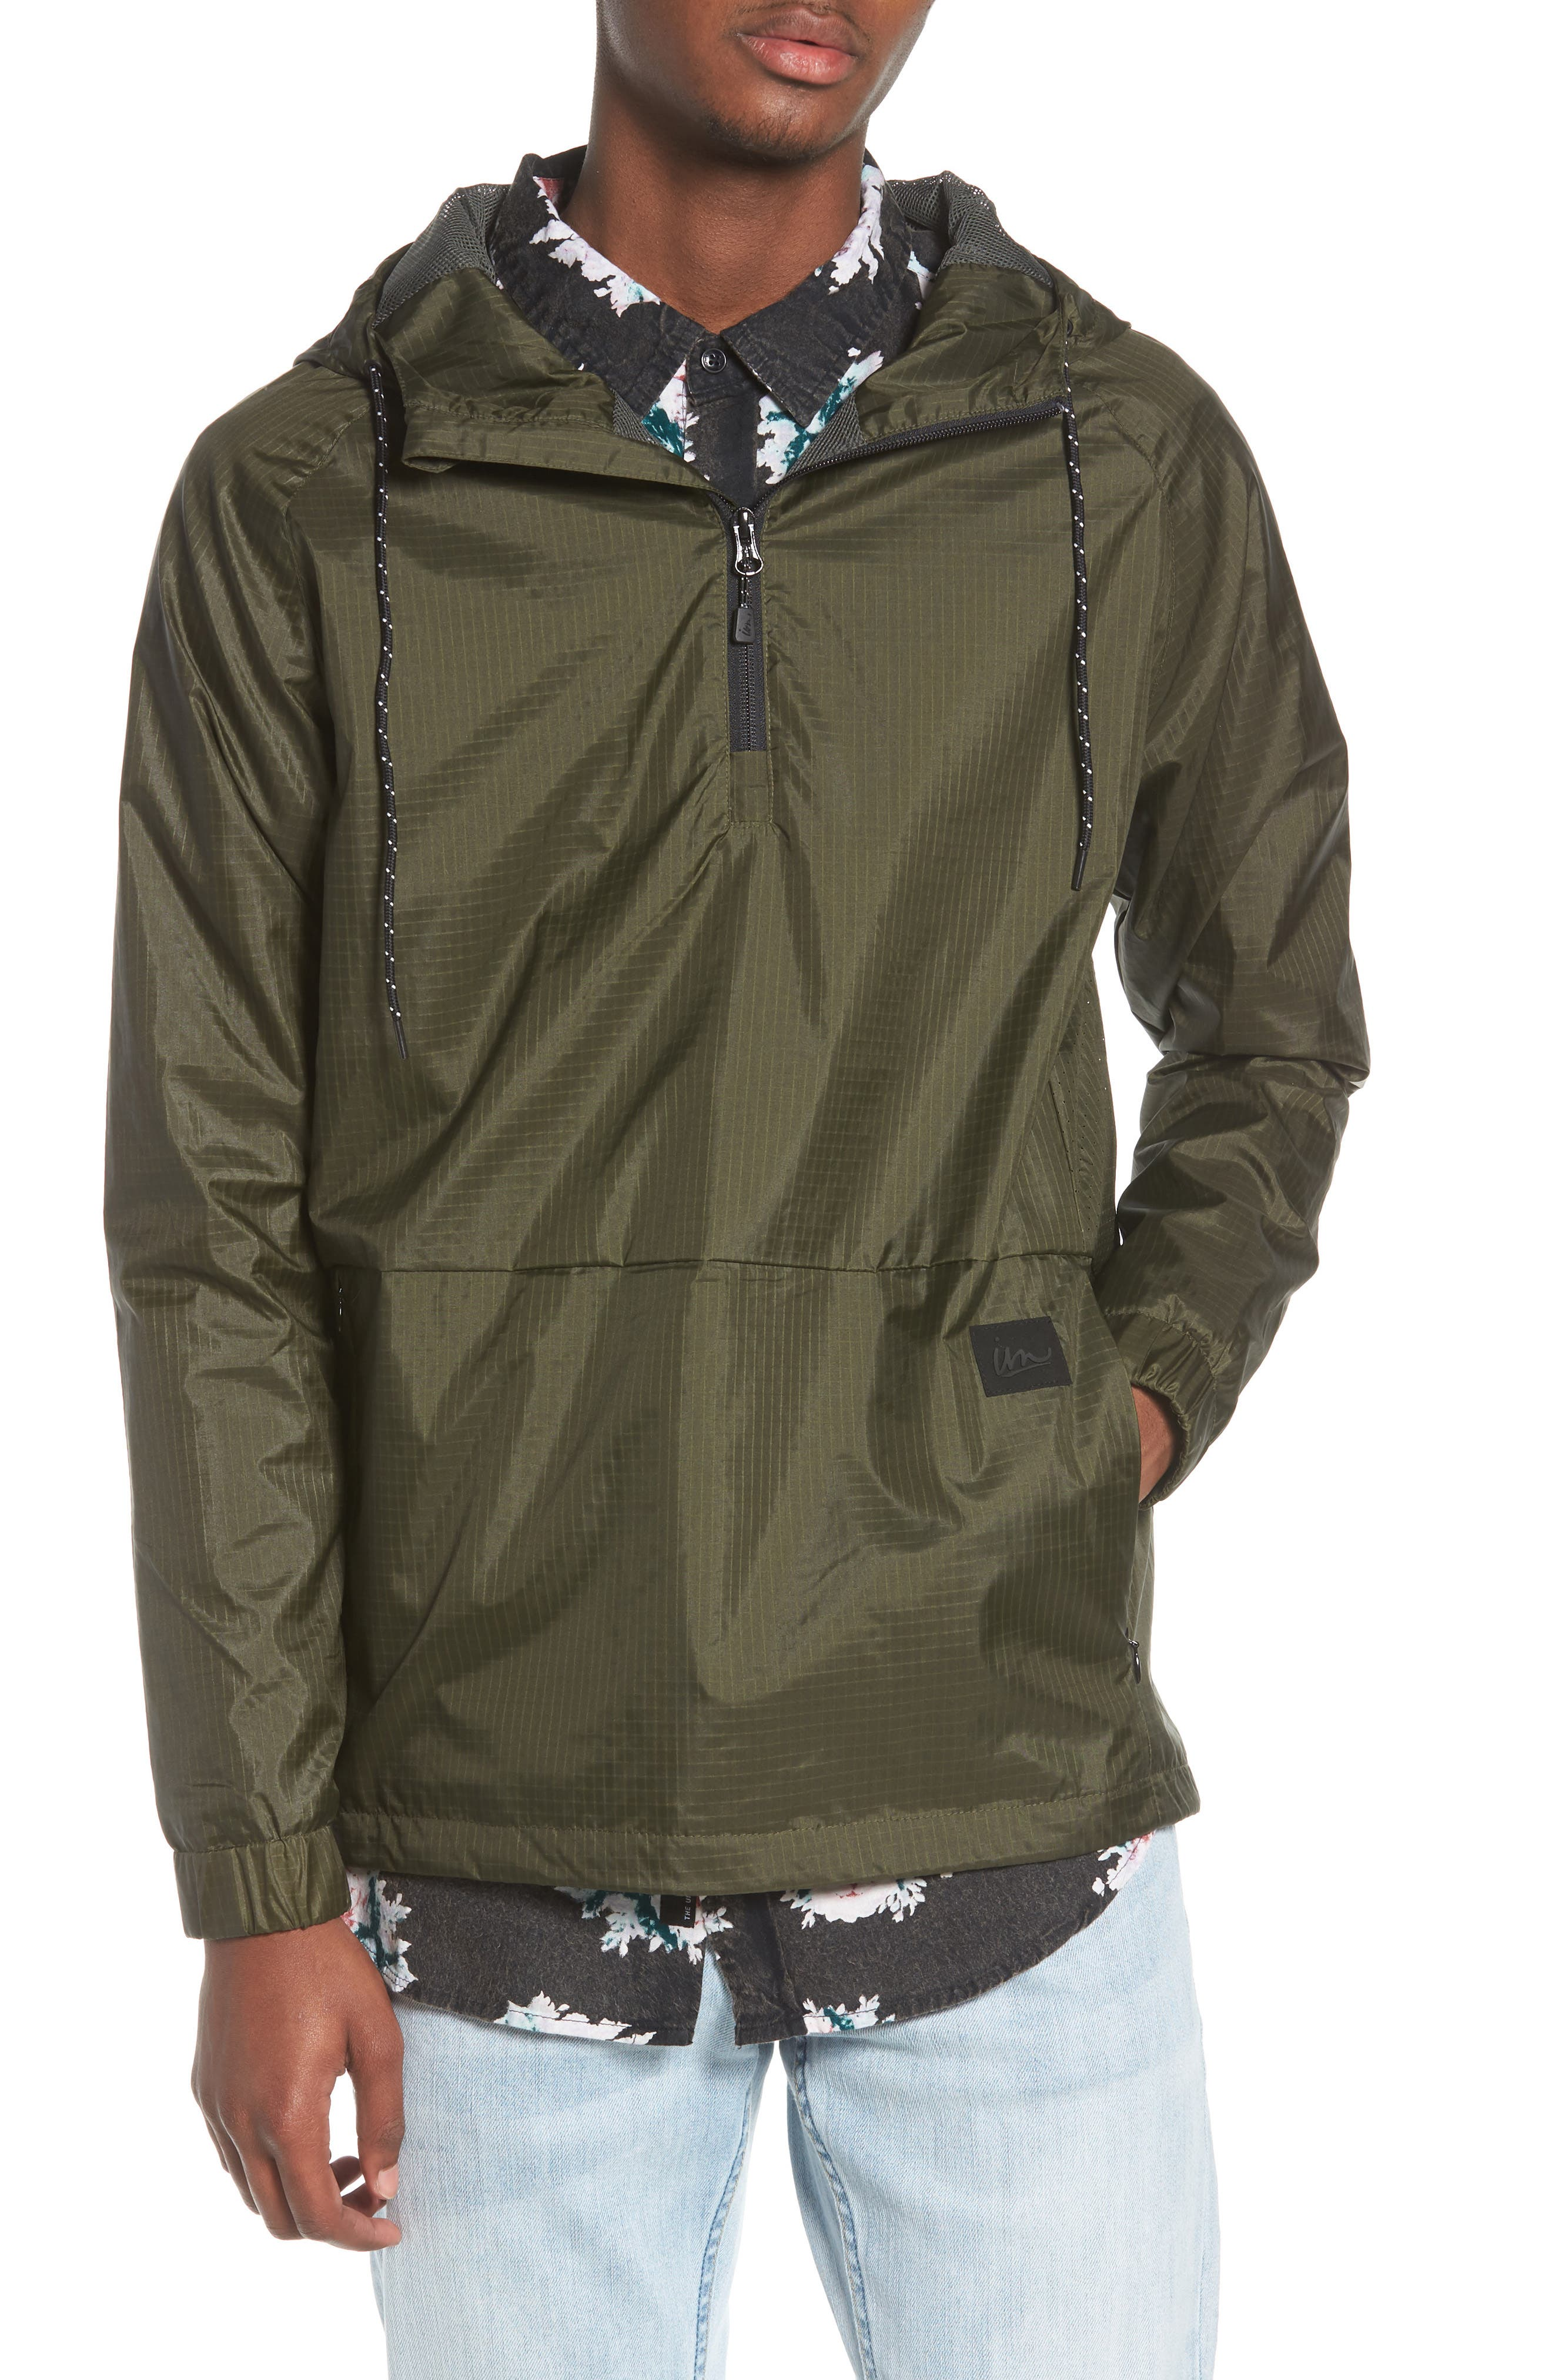 NCT Bezel Packable Anorak,                             Main thumbnail 1, color,                             Olive